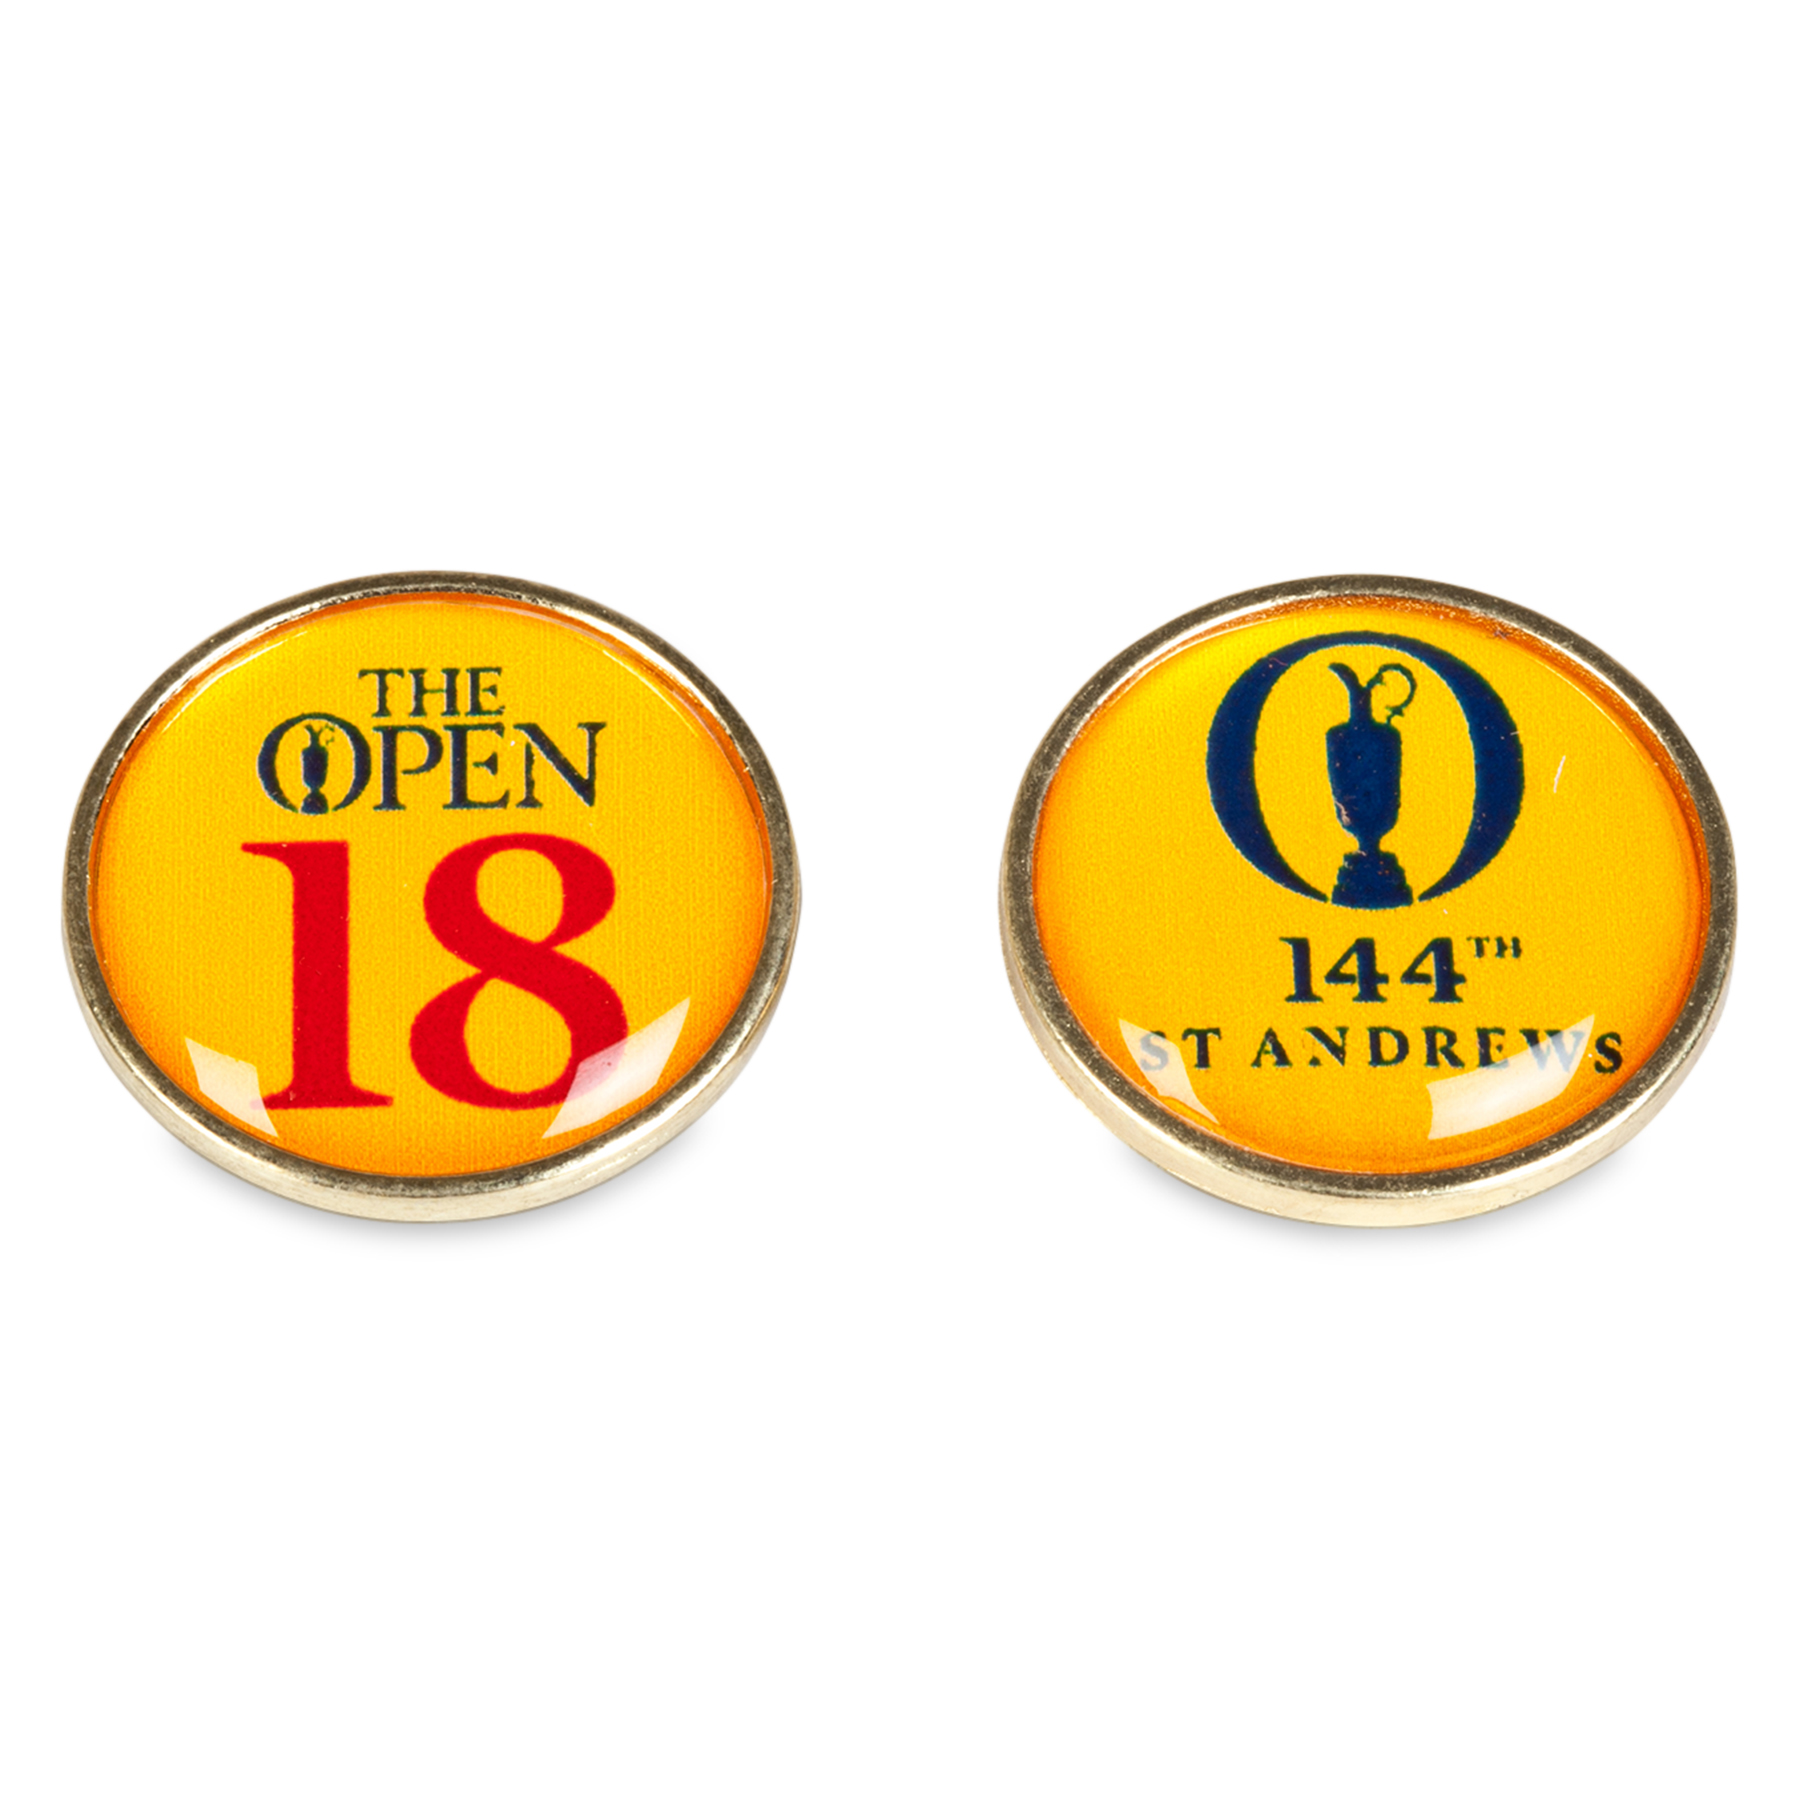 The Open 144th St Andrews Ballmarkers